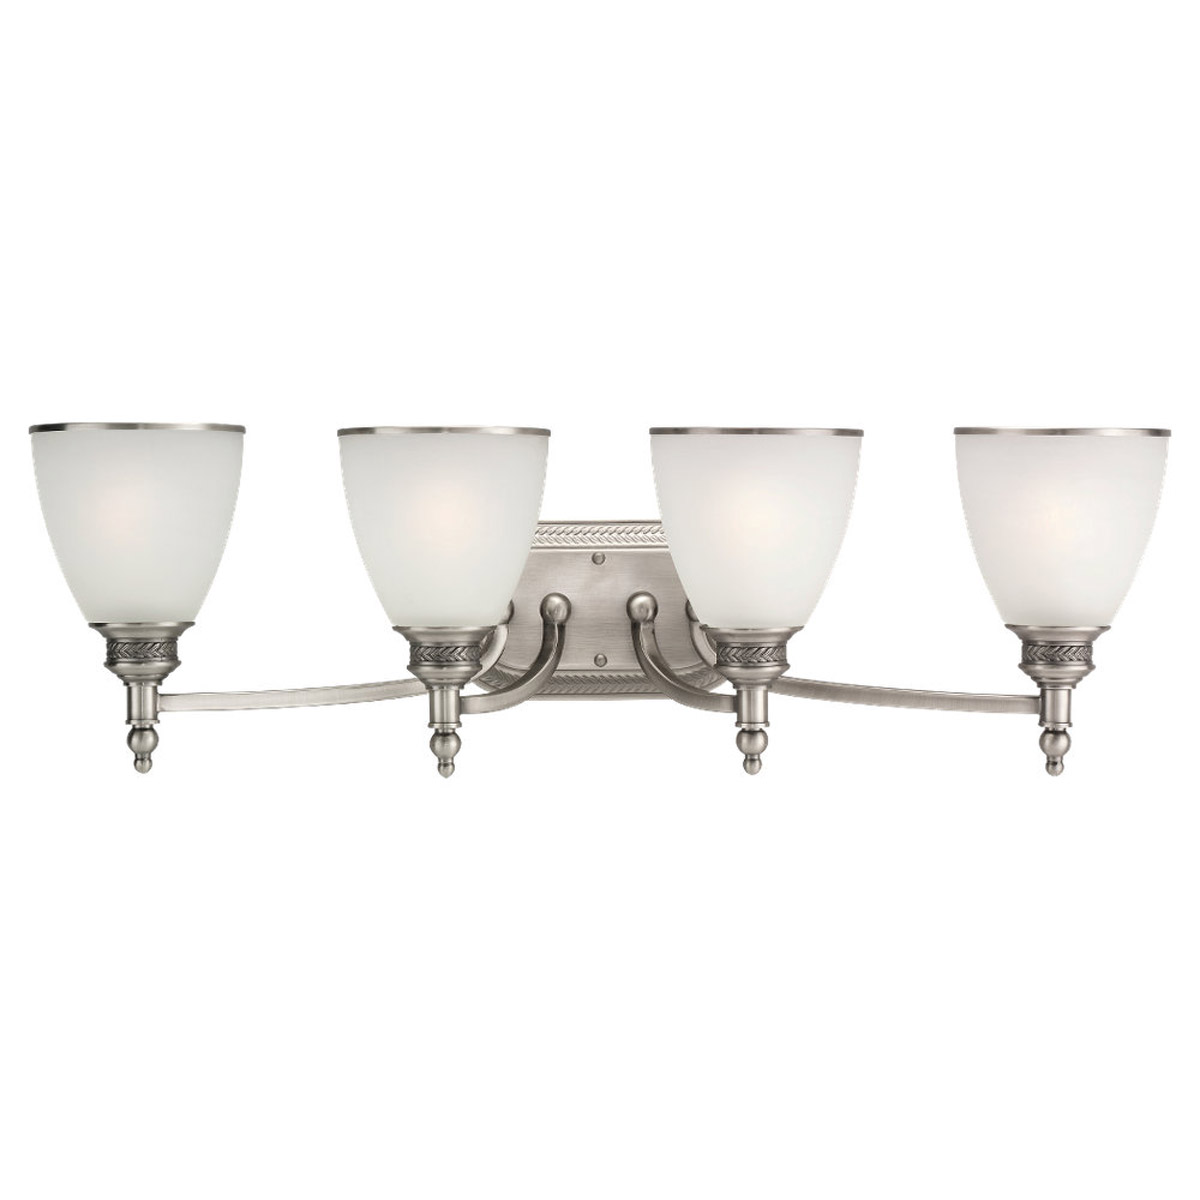 Sea Gull Lighting Laurel Leaf 4 Light Bath Vanity in Antique Brushed Nickel 44352-965 photo